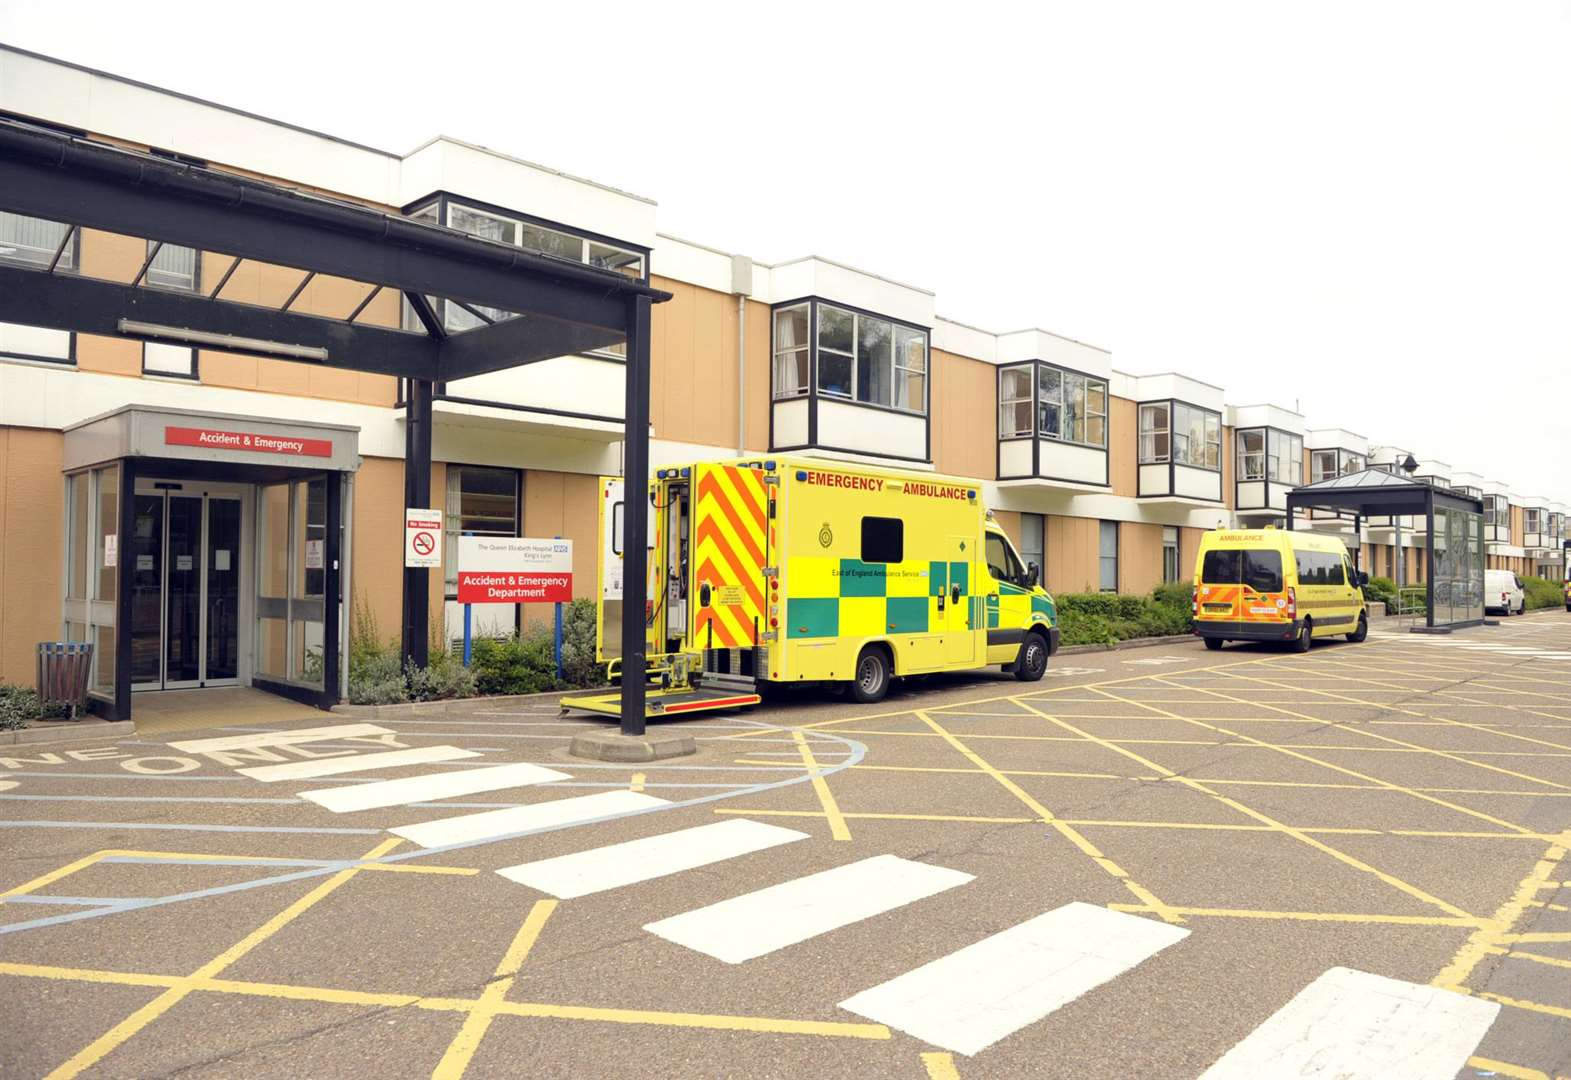 King's Lynn hospital set to implement check system following inquest